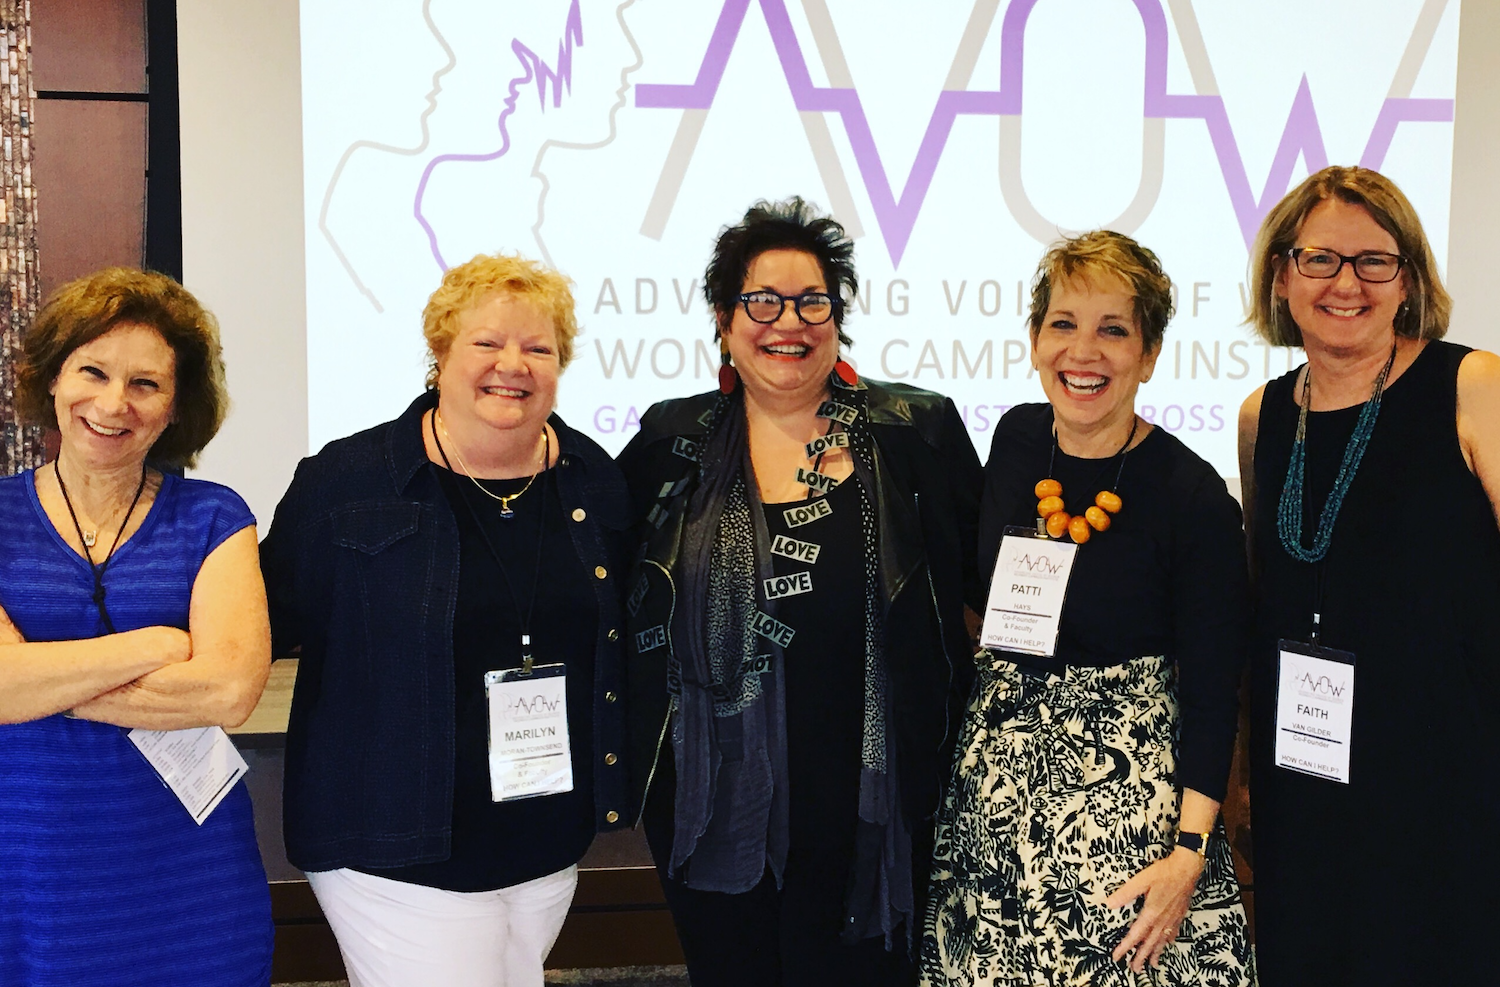 AVOW was started in Fort Wayne by a group of women, including Rachel Tobin-Smith, Marilyn Moran-Townsend, Patti Hays, and Faith Van Gilder.